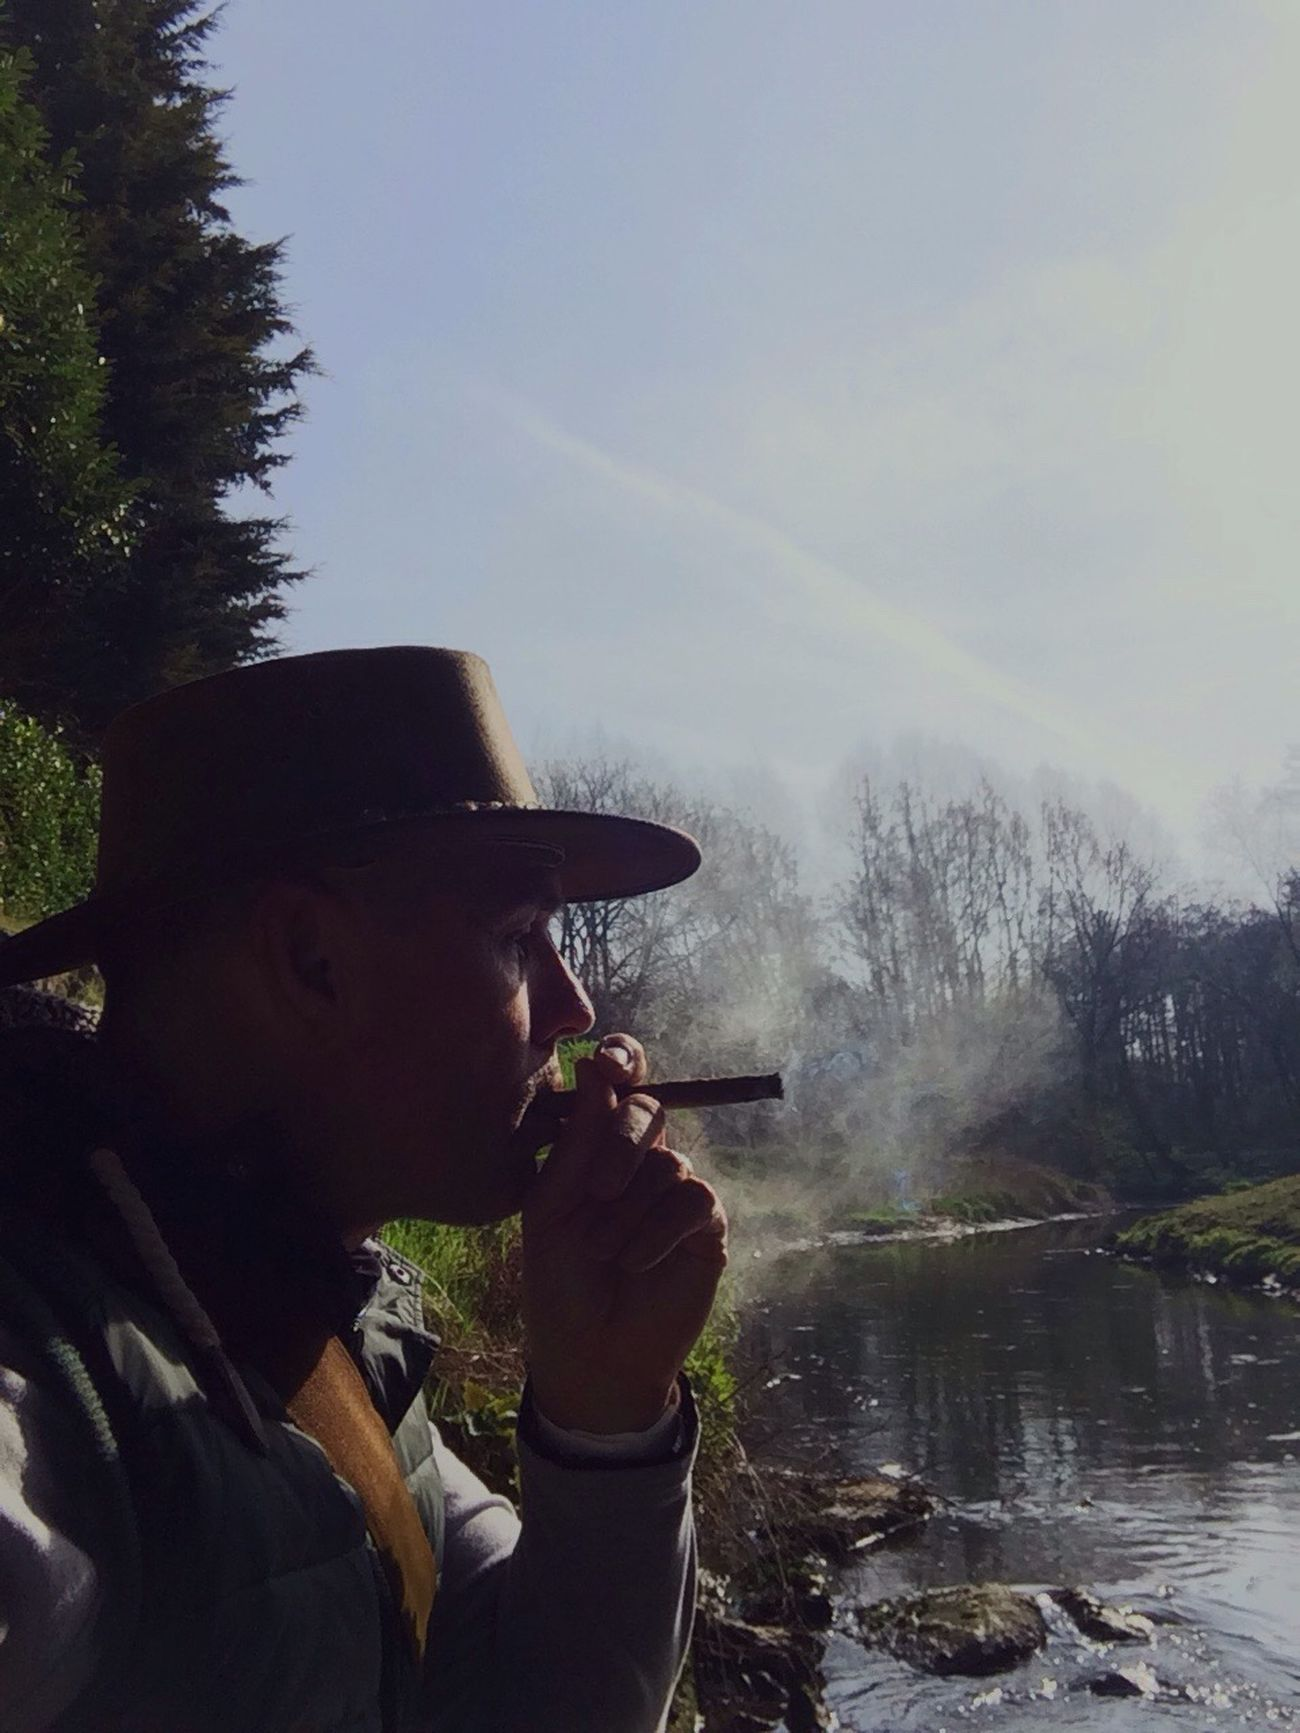 Having a break with a good smoke. Water Real People Tree One Person Leisure Activity Nature Day Outdoors Men River Beauty In Nature Scenics Sky